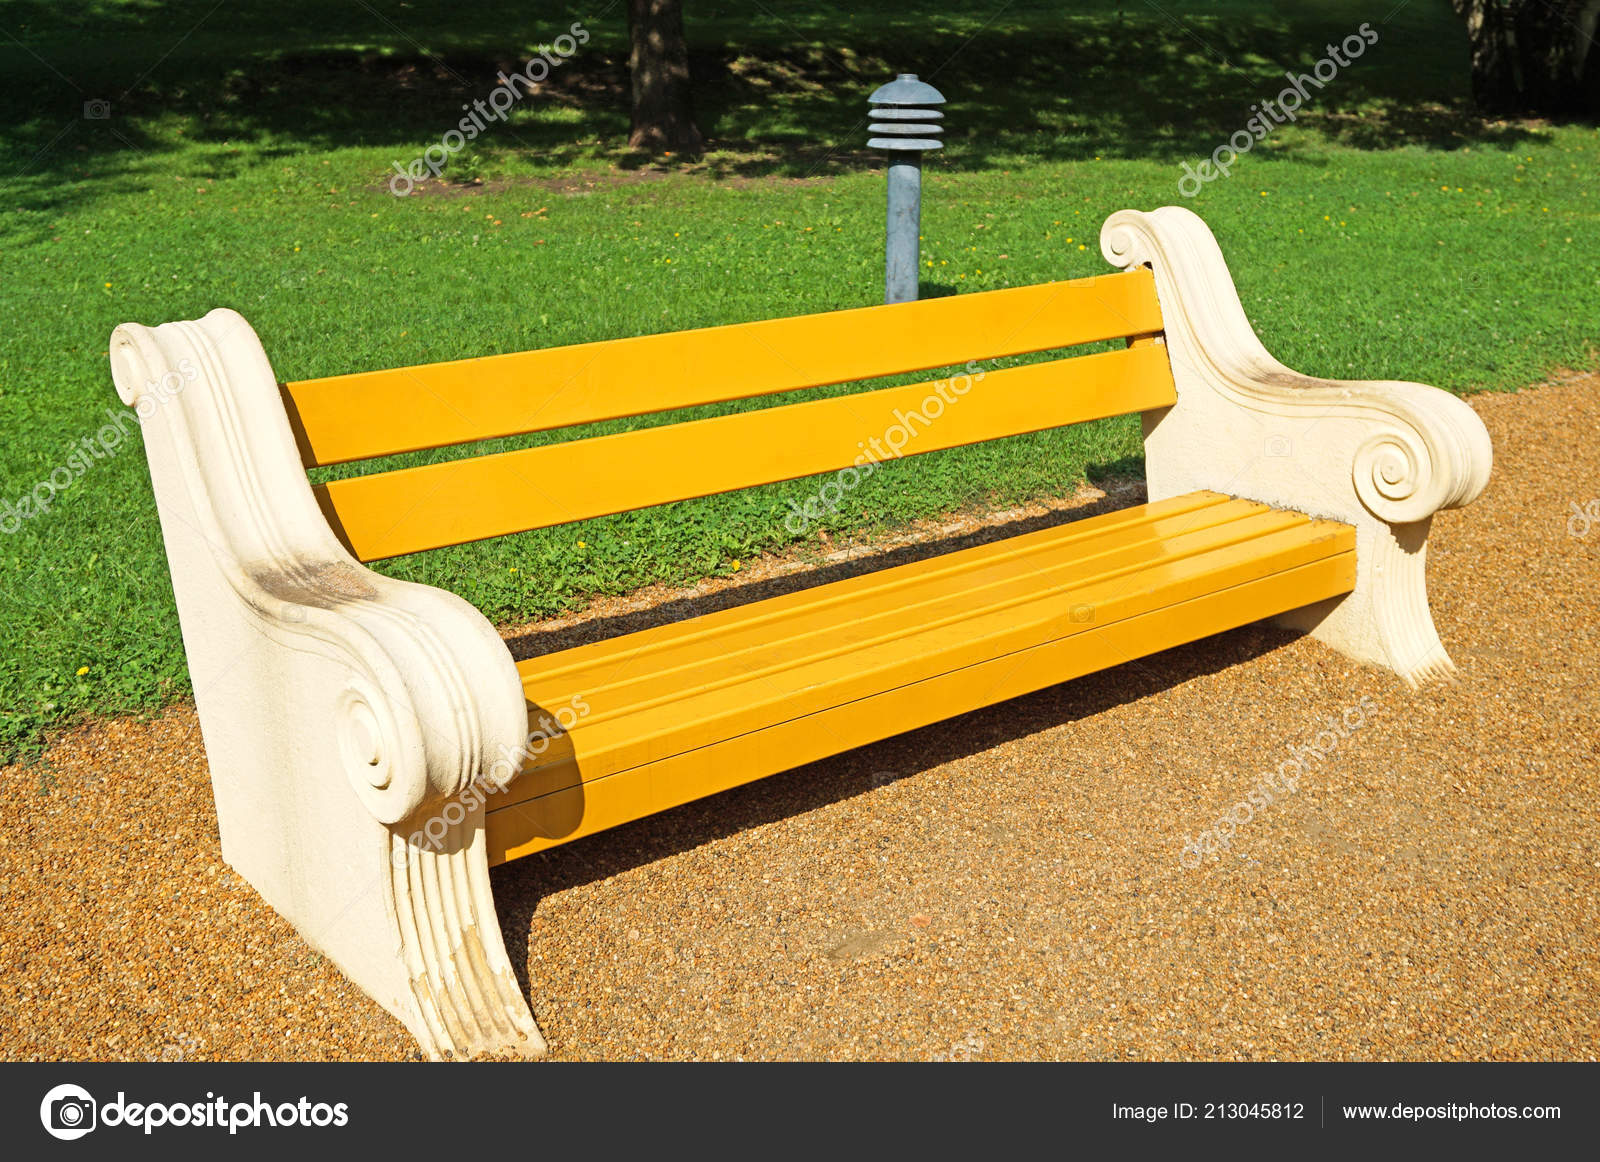 Super Stone And Wood Bench Plans Bench Park Made Stone Wood Gmtry Best Dining Table And Chair Ideas Images Gmtryco